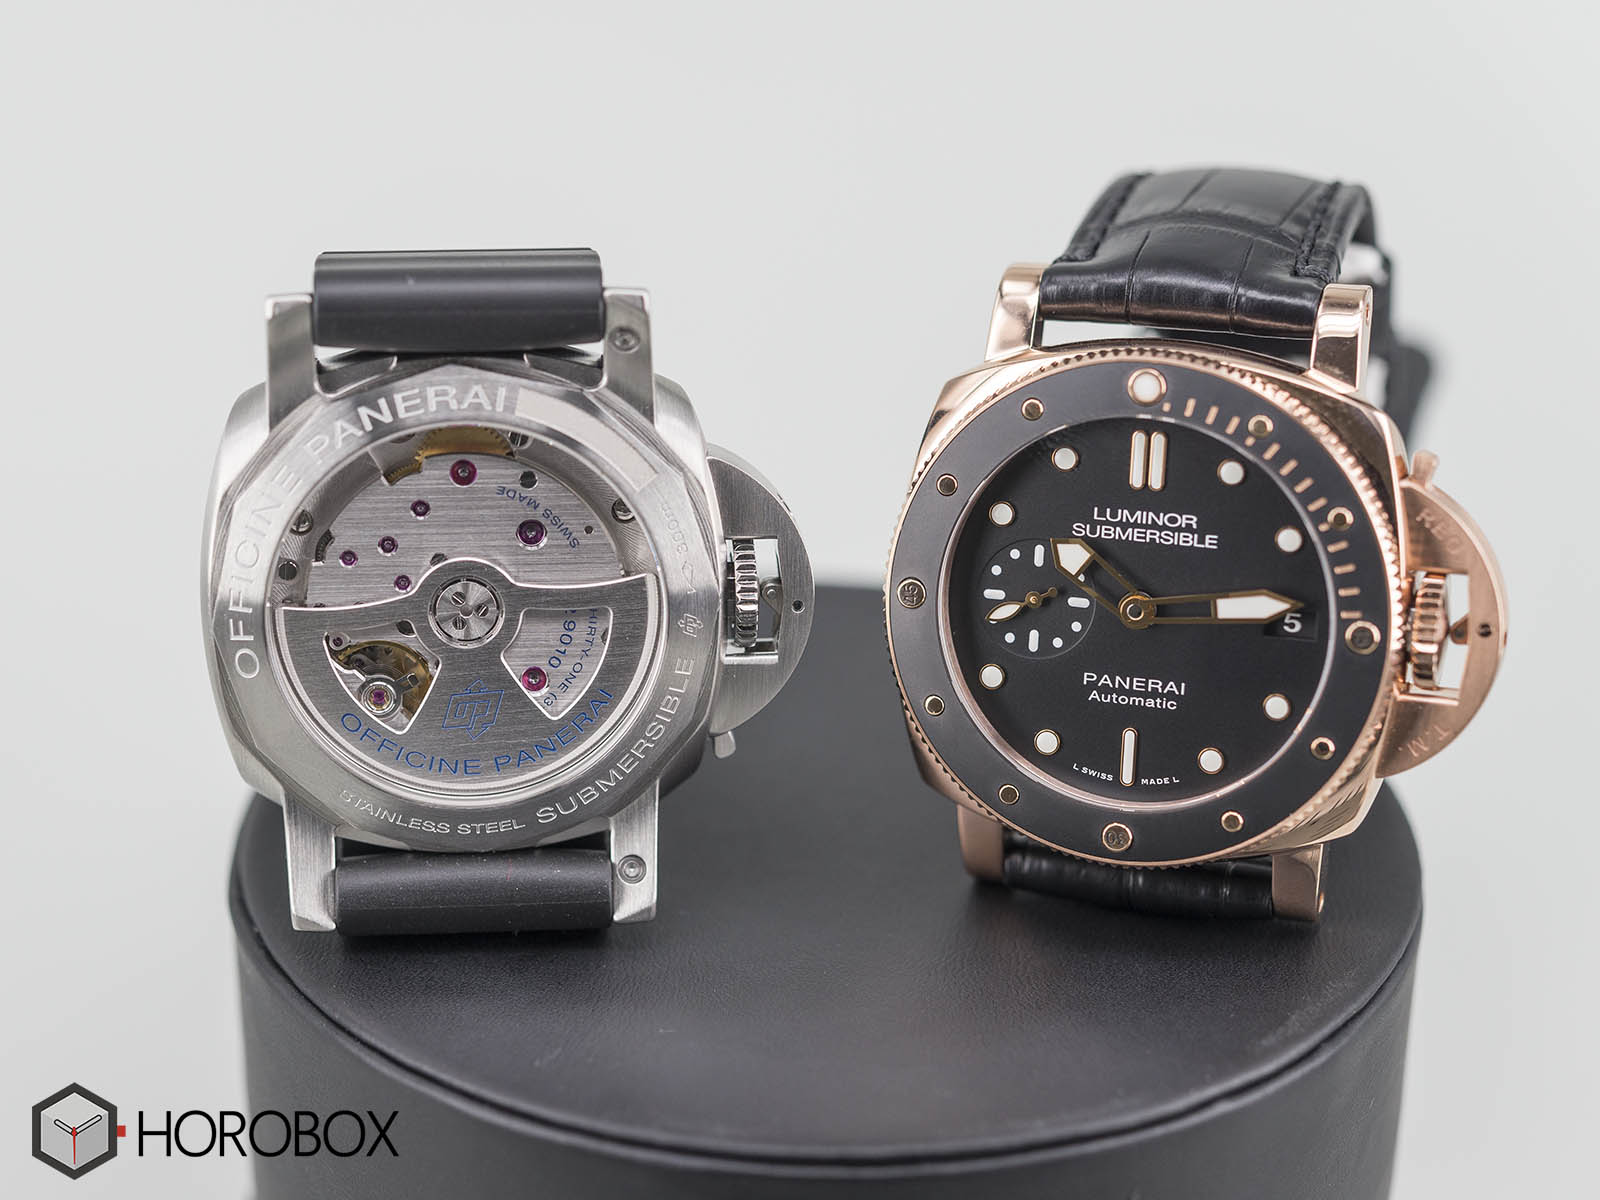 panerai-luminor-1950-submersible-pam00682-pam00684-8.jpg